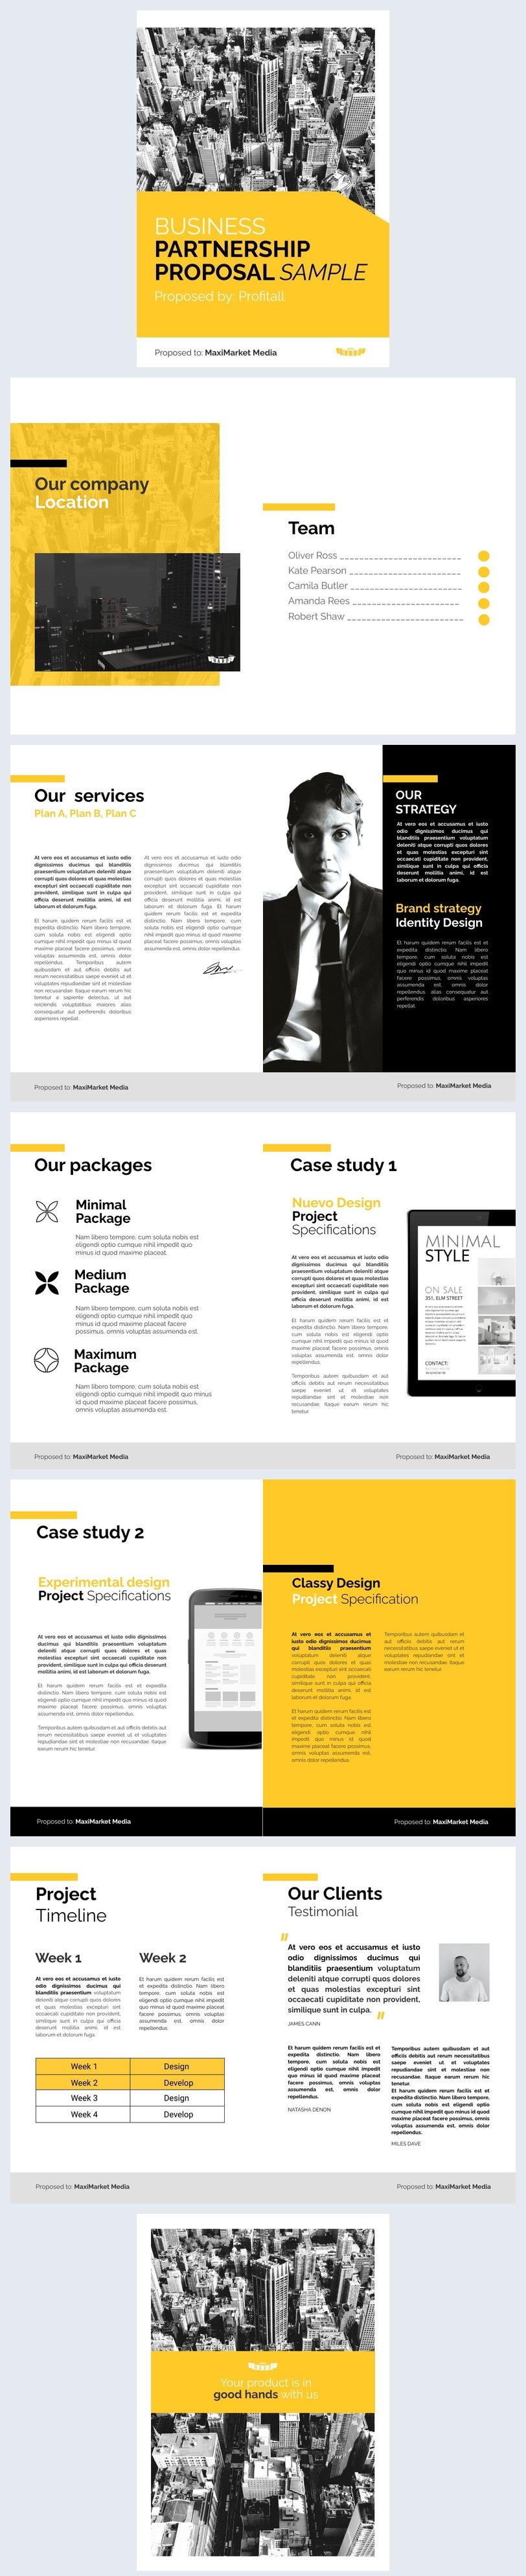 Business Partnership Proposal Design Inspiration